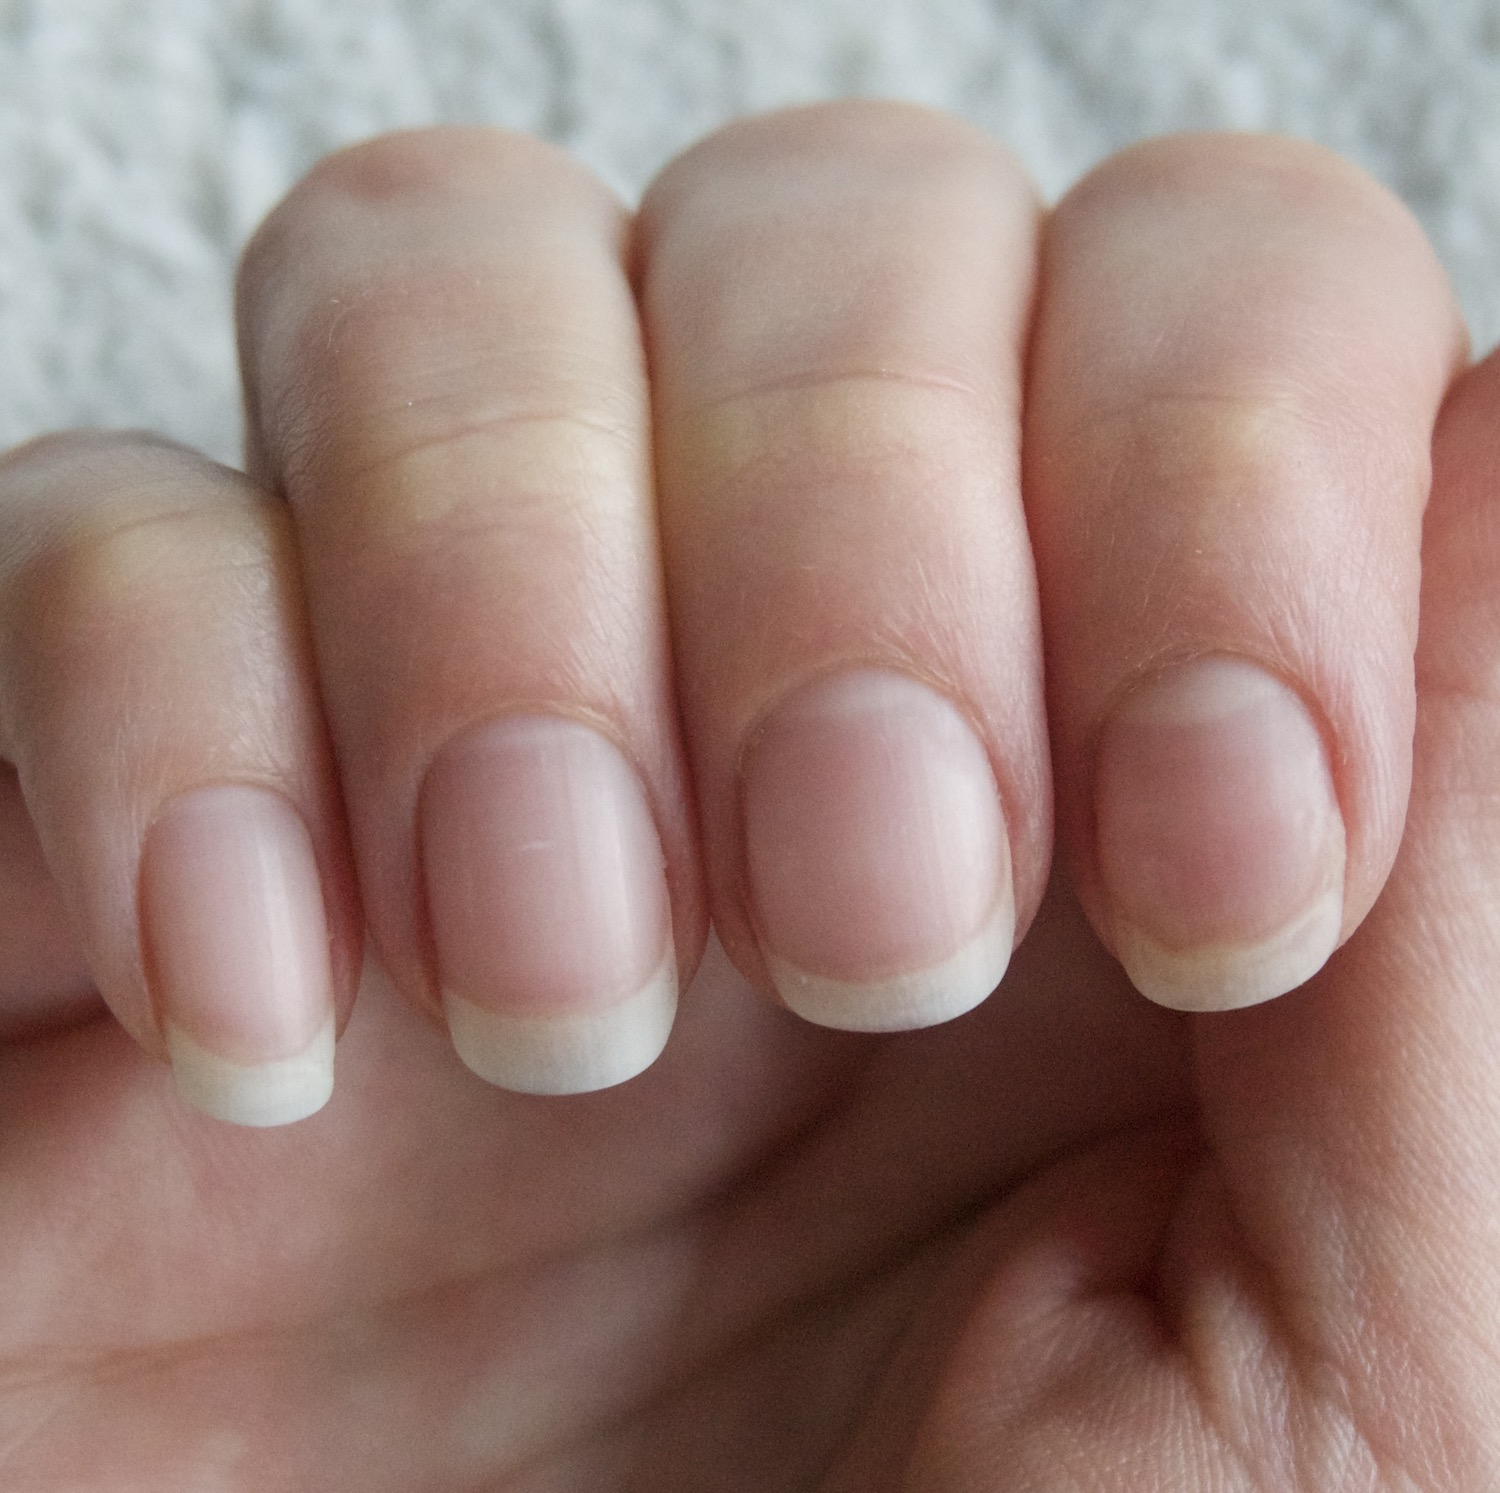 Mavala Scientifique K+ nagelverharder review gespleten nagels